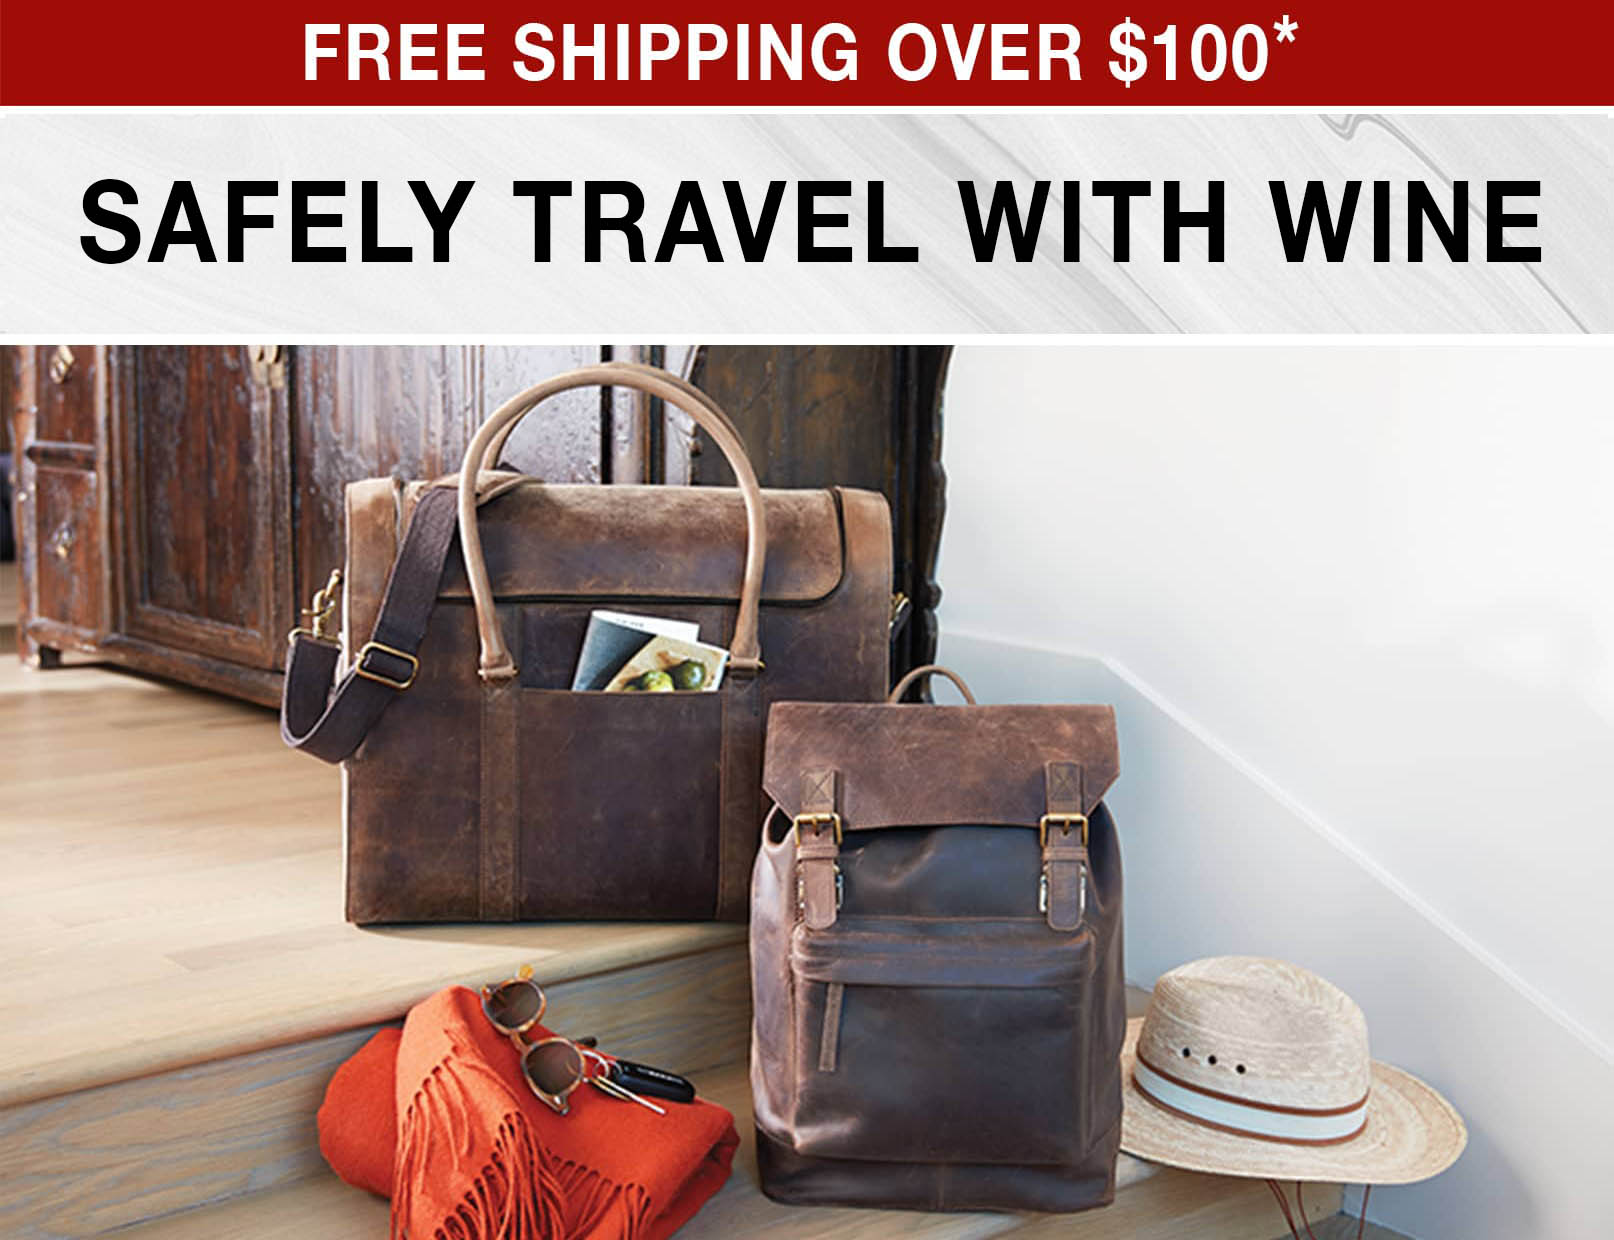 Safely Travel With Wine - Free Shipping Over $100 use code FS21WEB